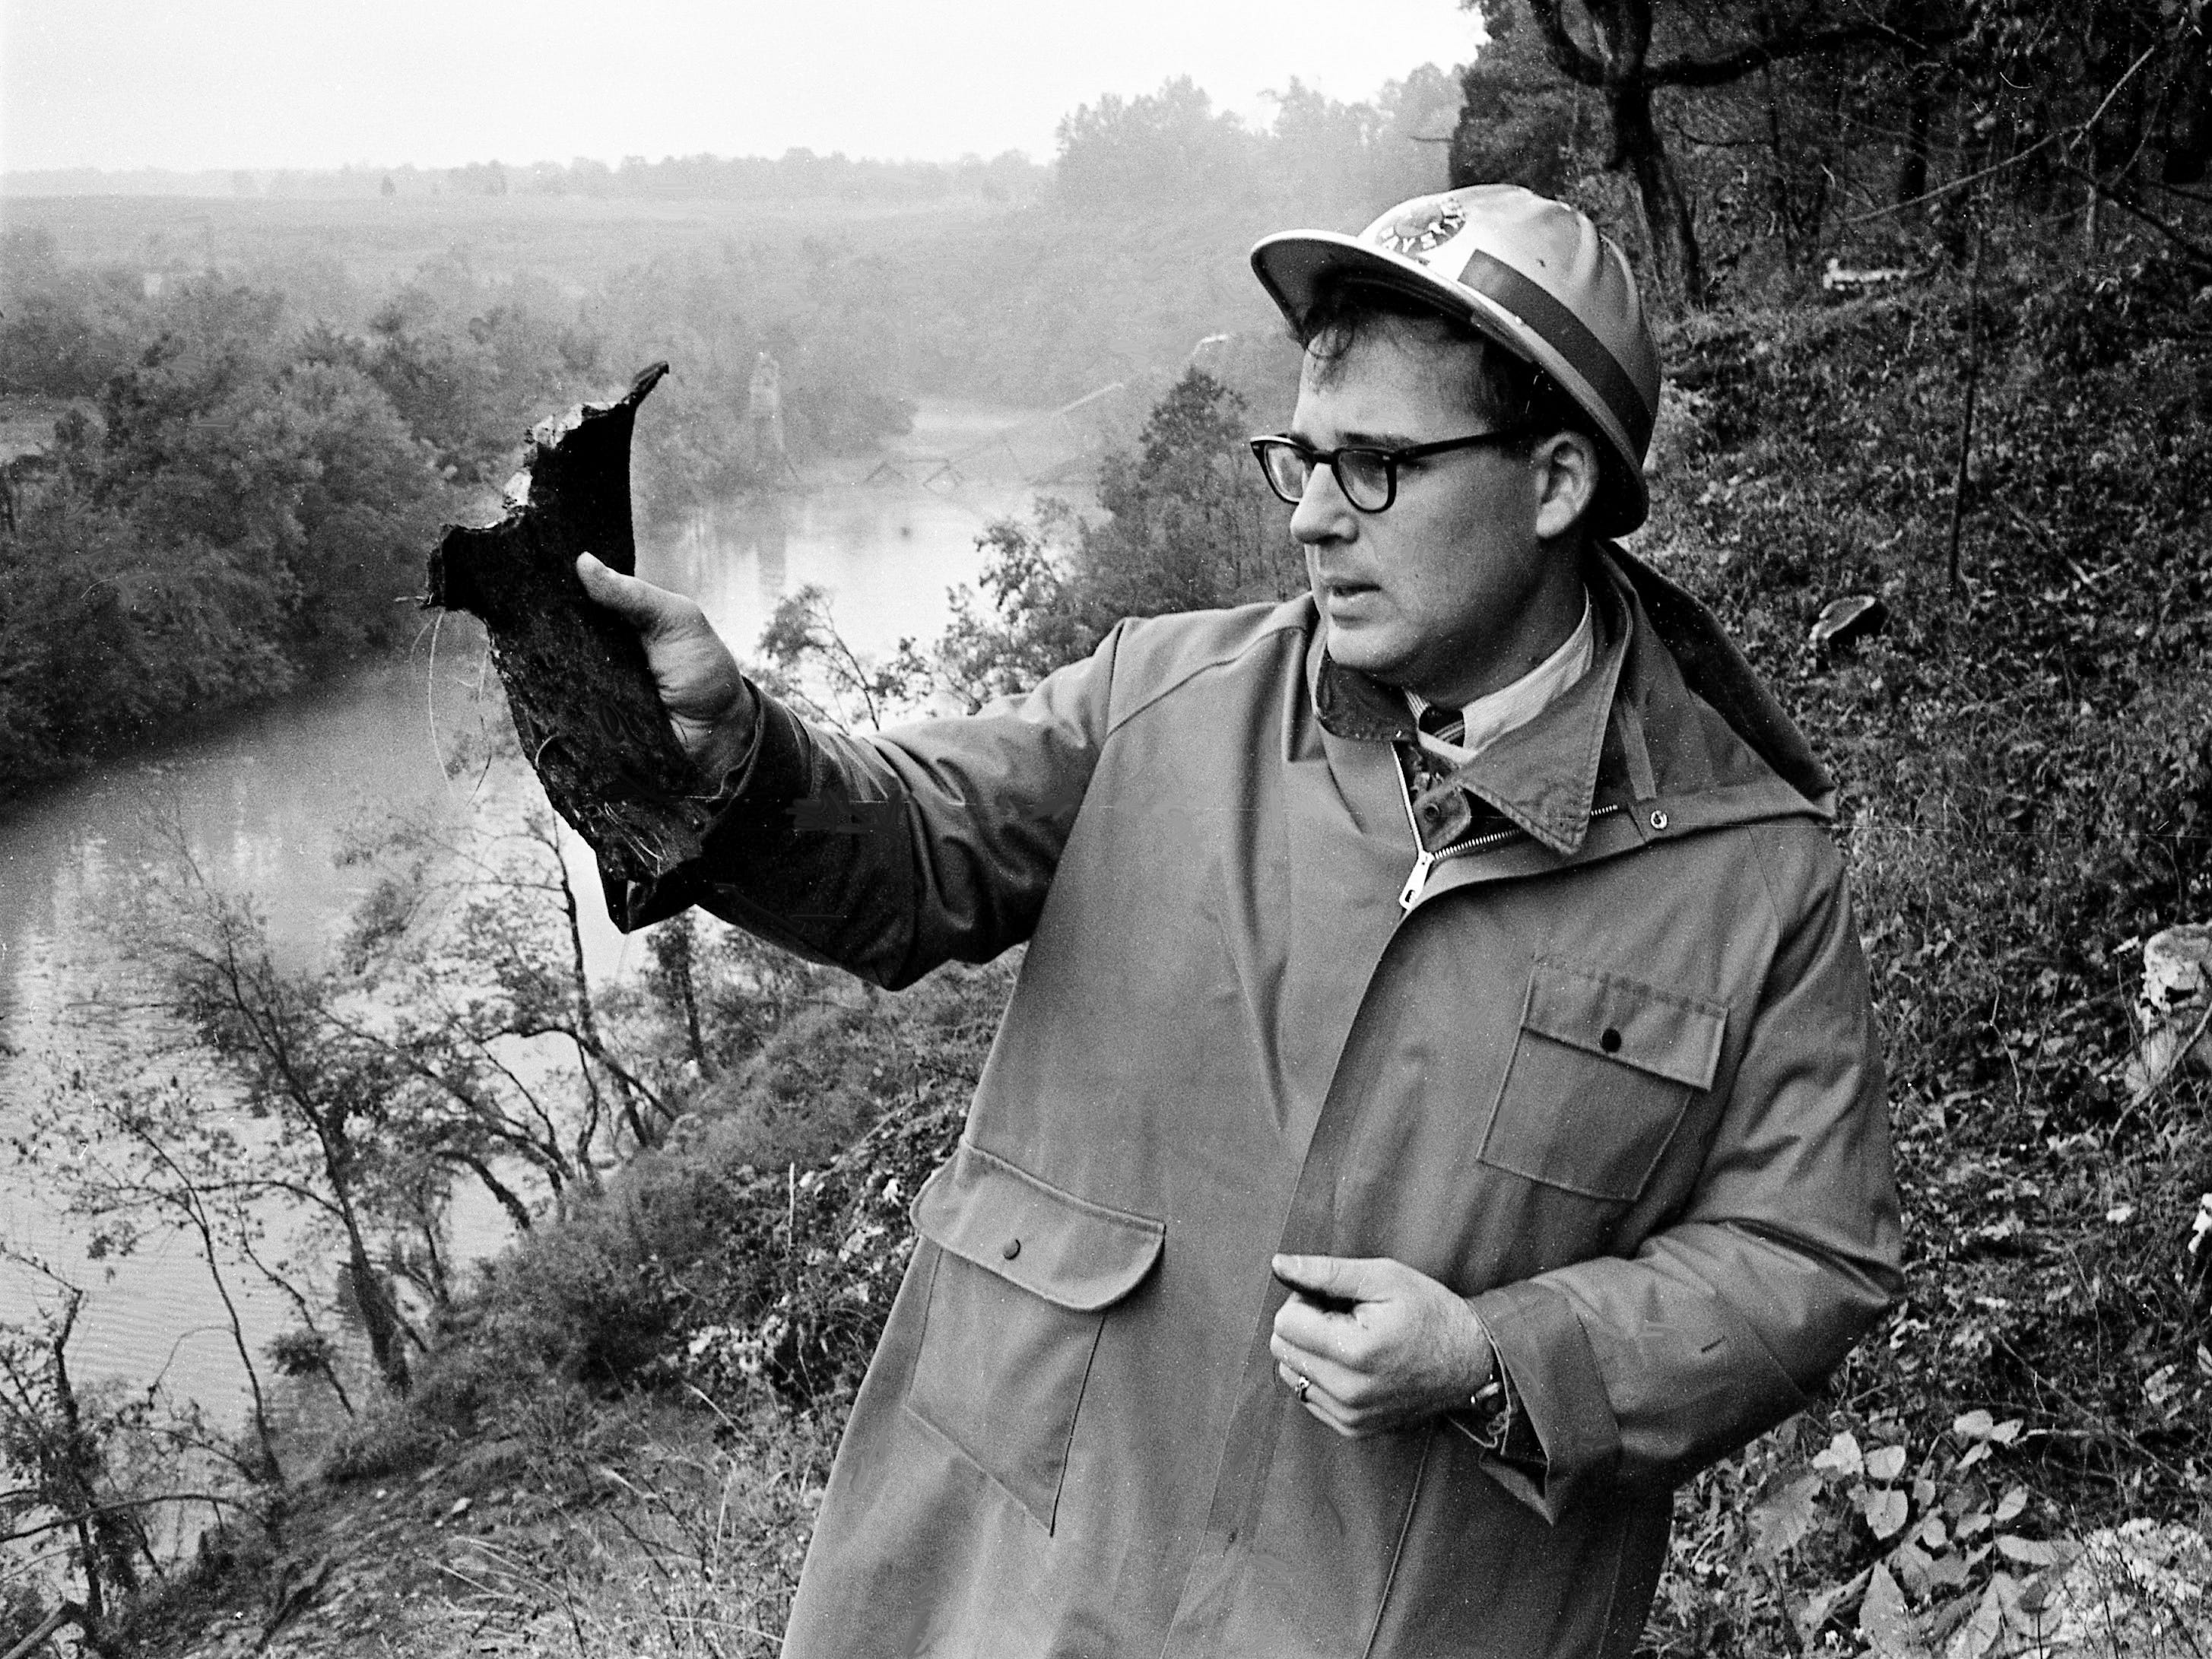 Tennessean reporter William Greenburg stands on a bluff over the Stones River examining a piece of shrapnel that hurtled 1,300 feet over the trees by the Couchville Pike bridge blast Sept. 28, 1967, and landed close to observers.